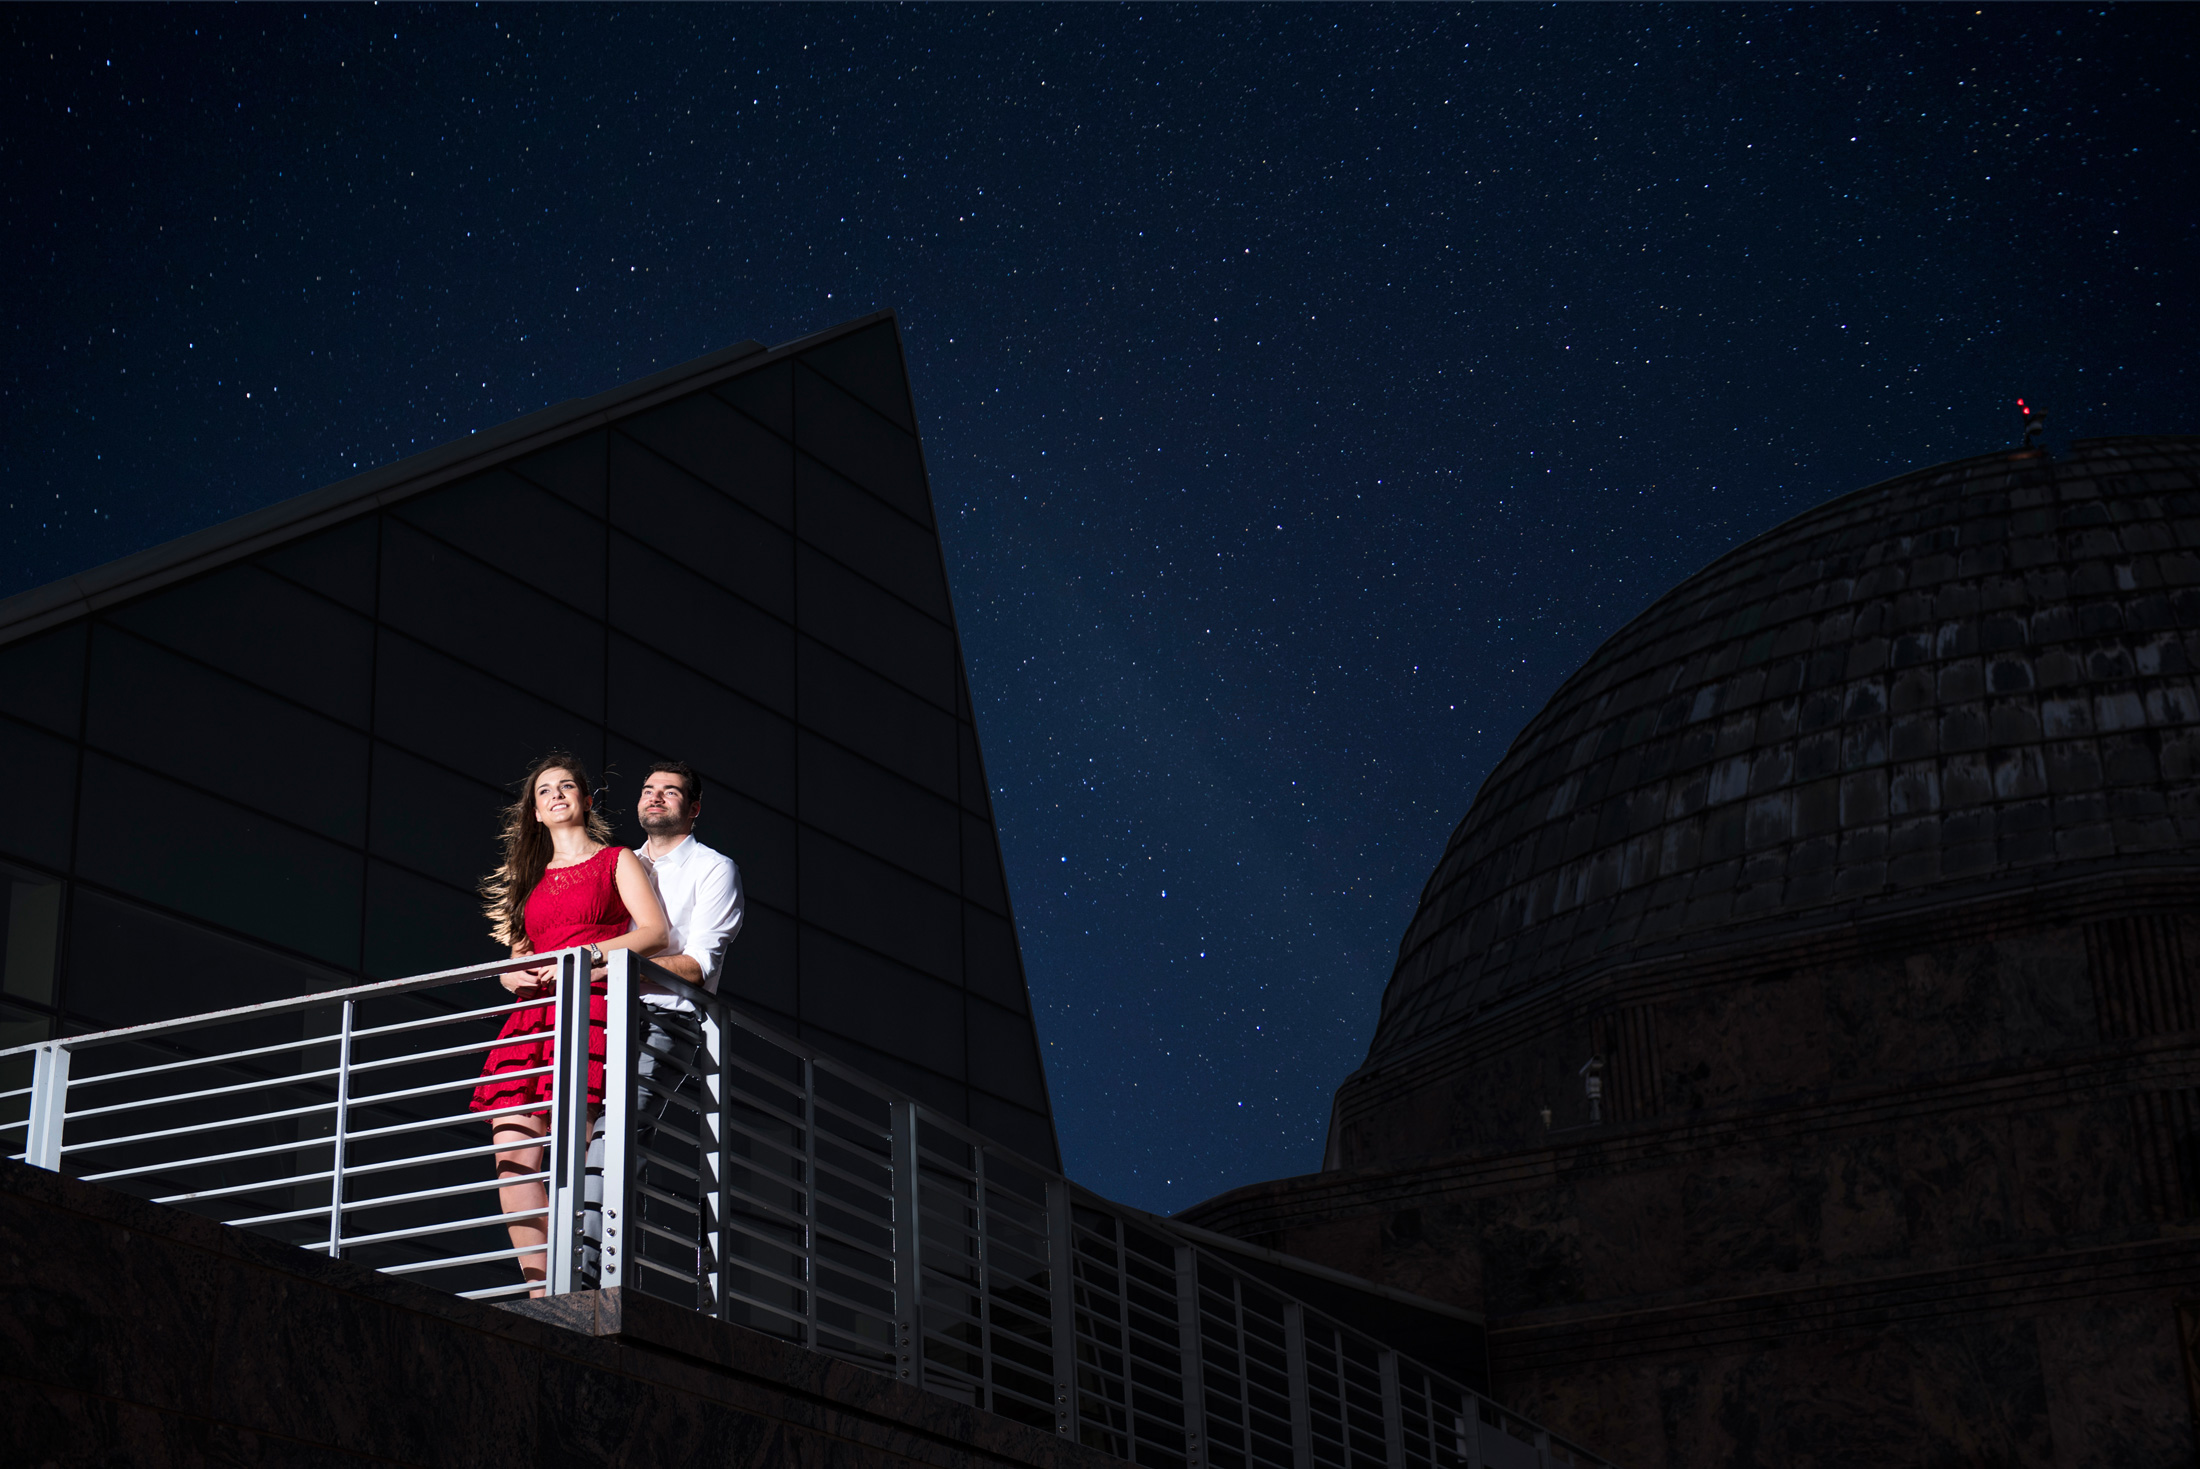 Gorgeous hoto of bride and groom with a sky filled with stars.